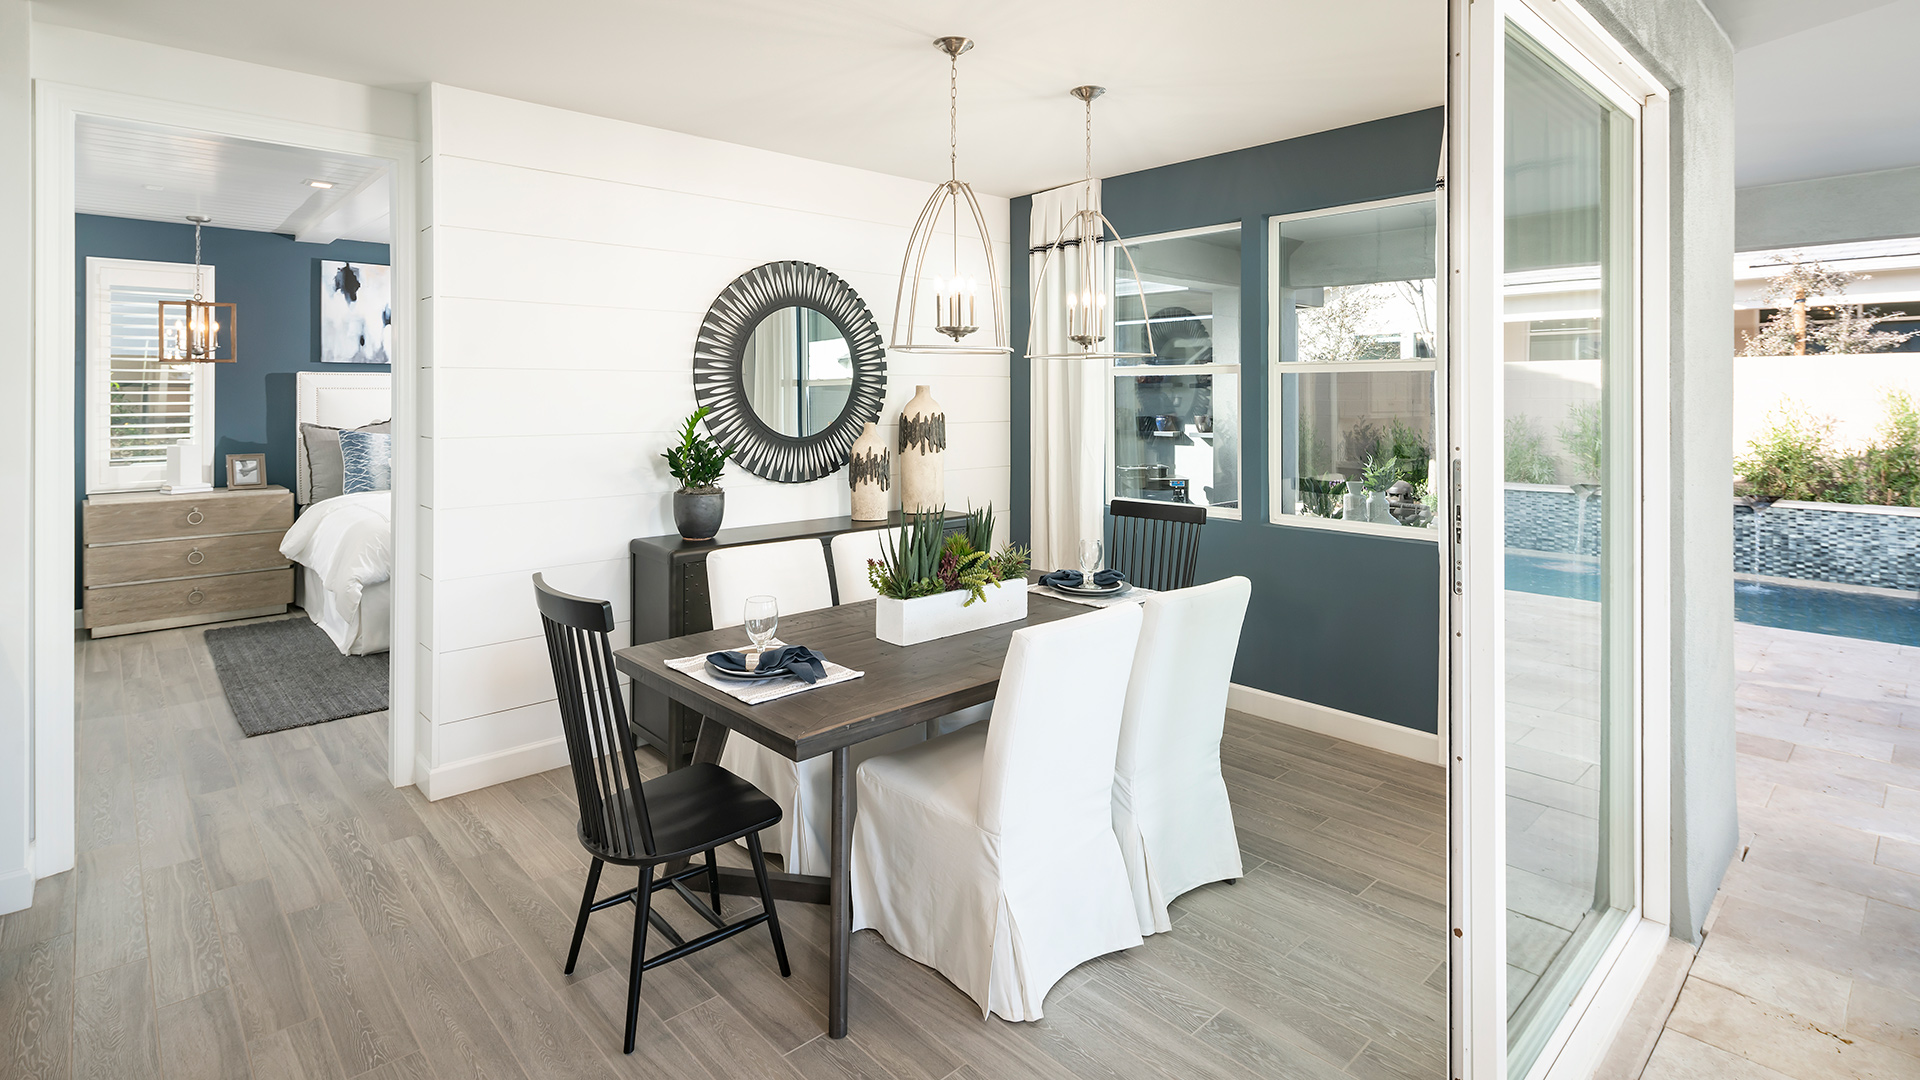 Casual dining area opens to large covered patio